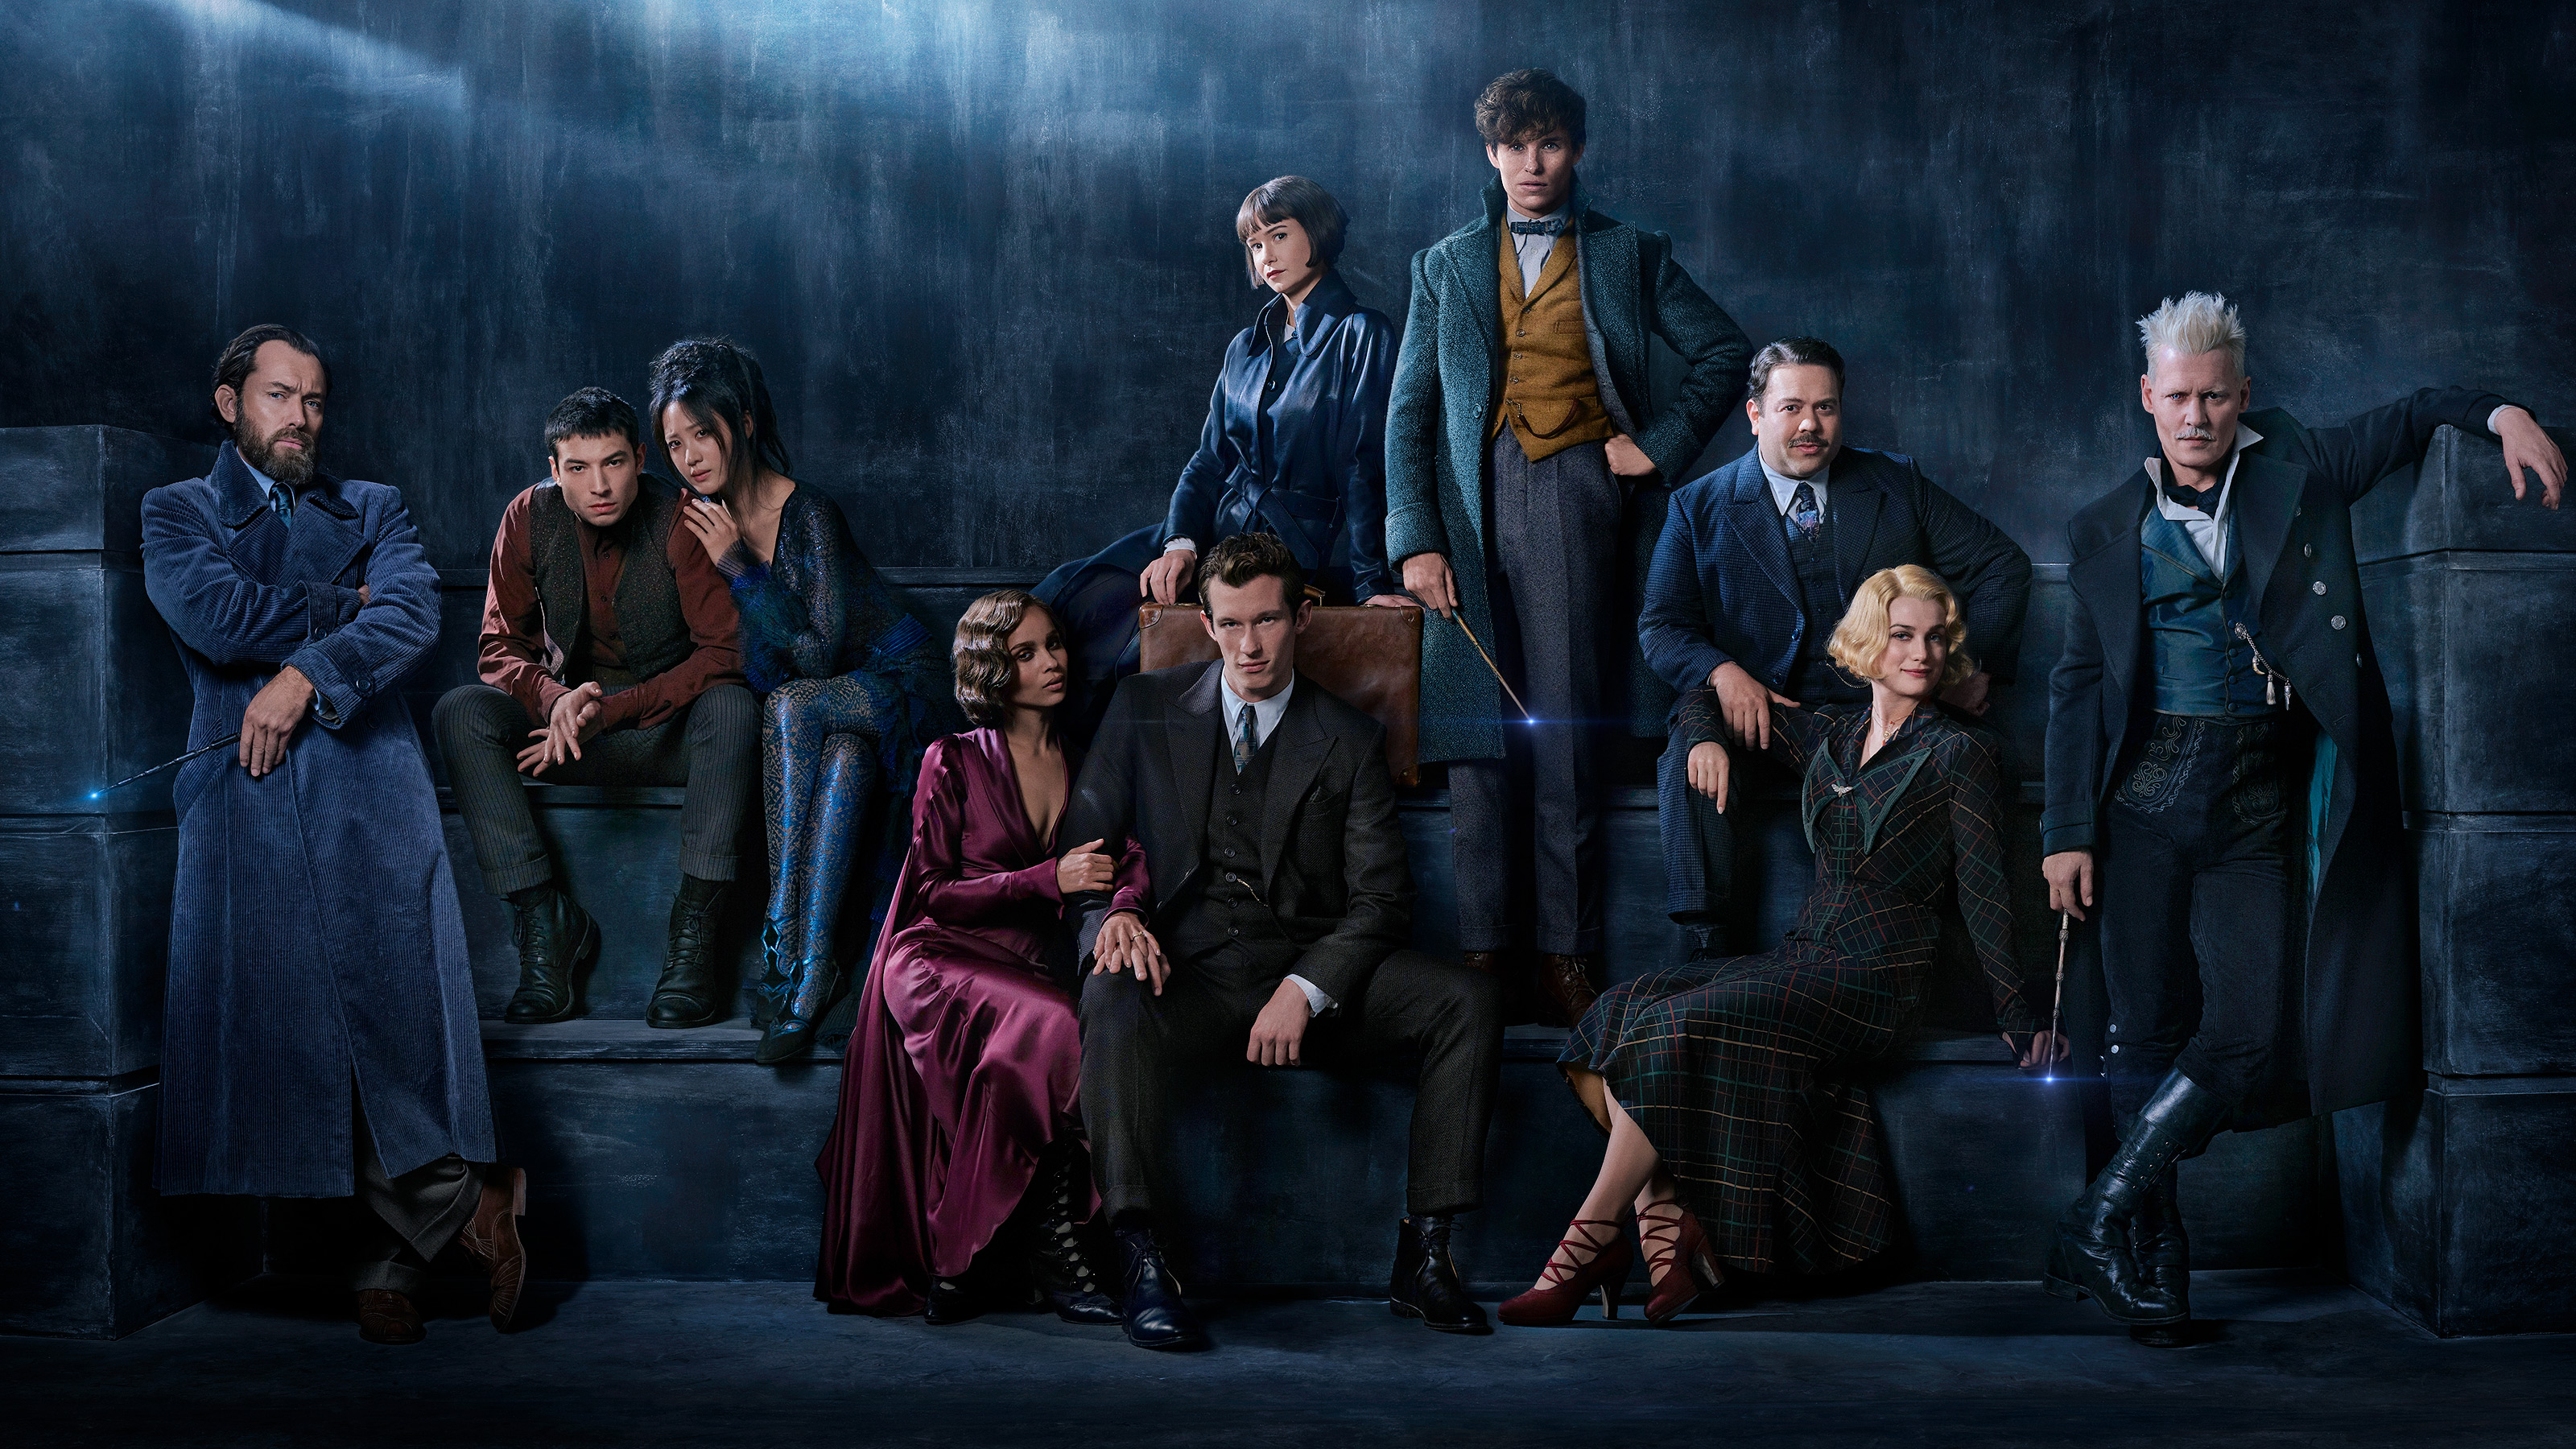 Fantastic Beasts 2: First look at Jude Law as Dumbledore, title revealed